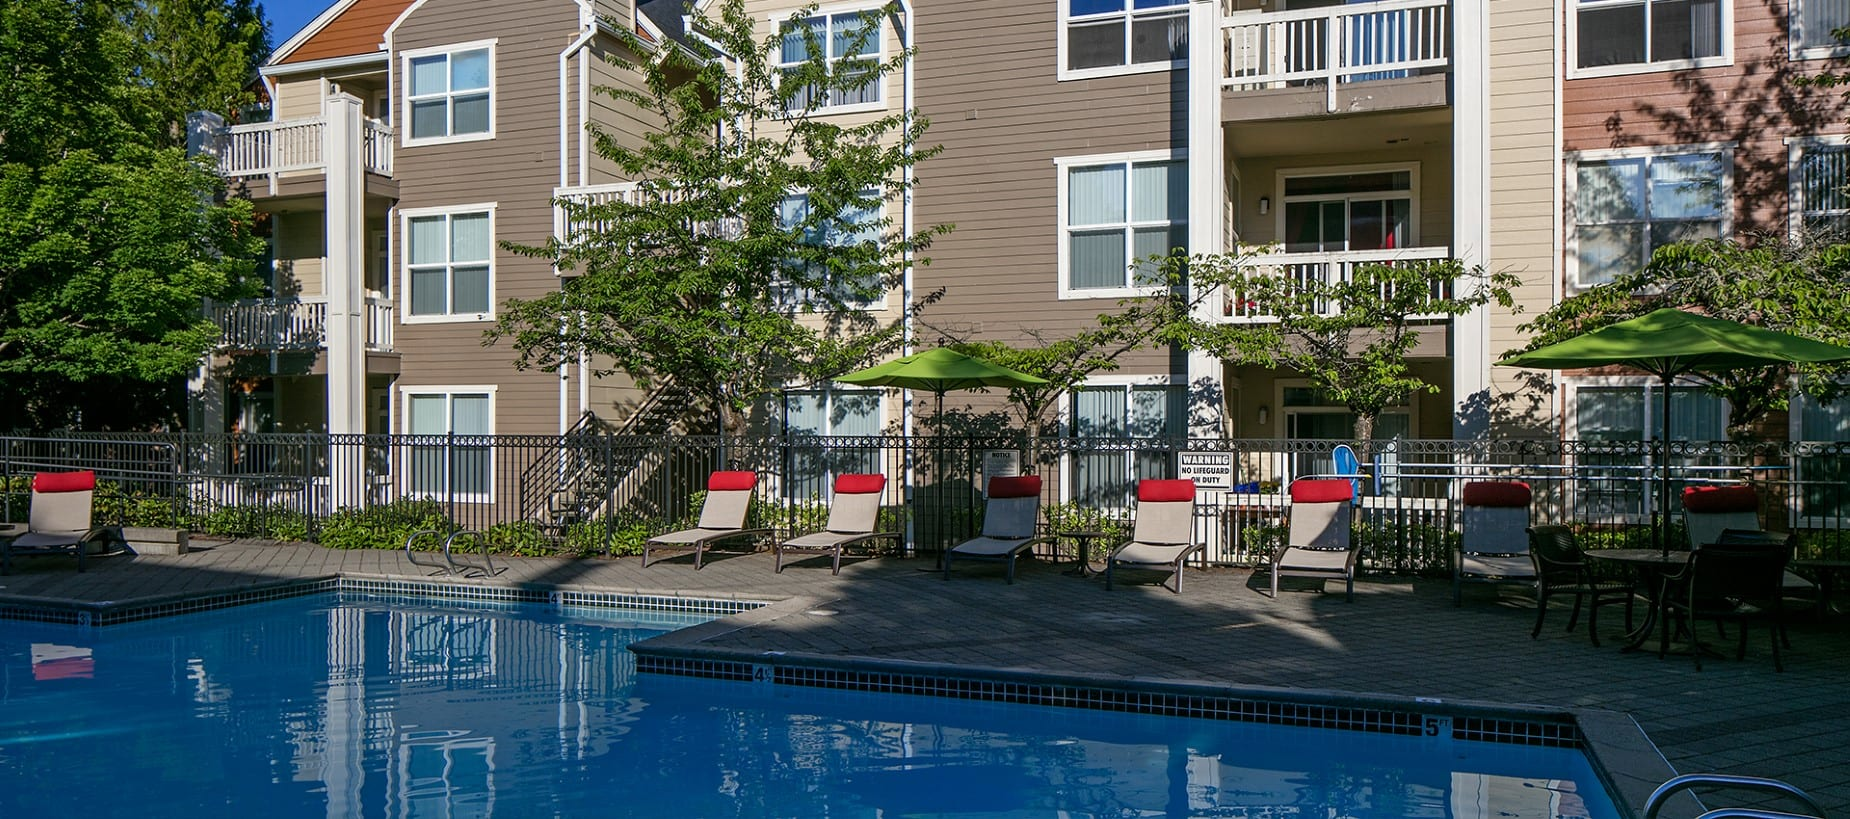 See what we have to offer by visiting Center Pointe Apartment Homes's amenities page.